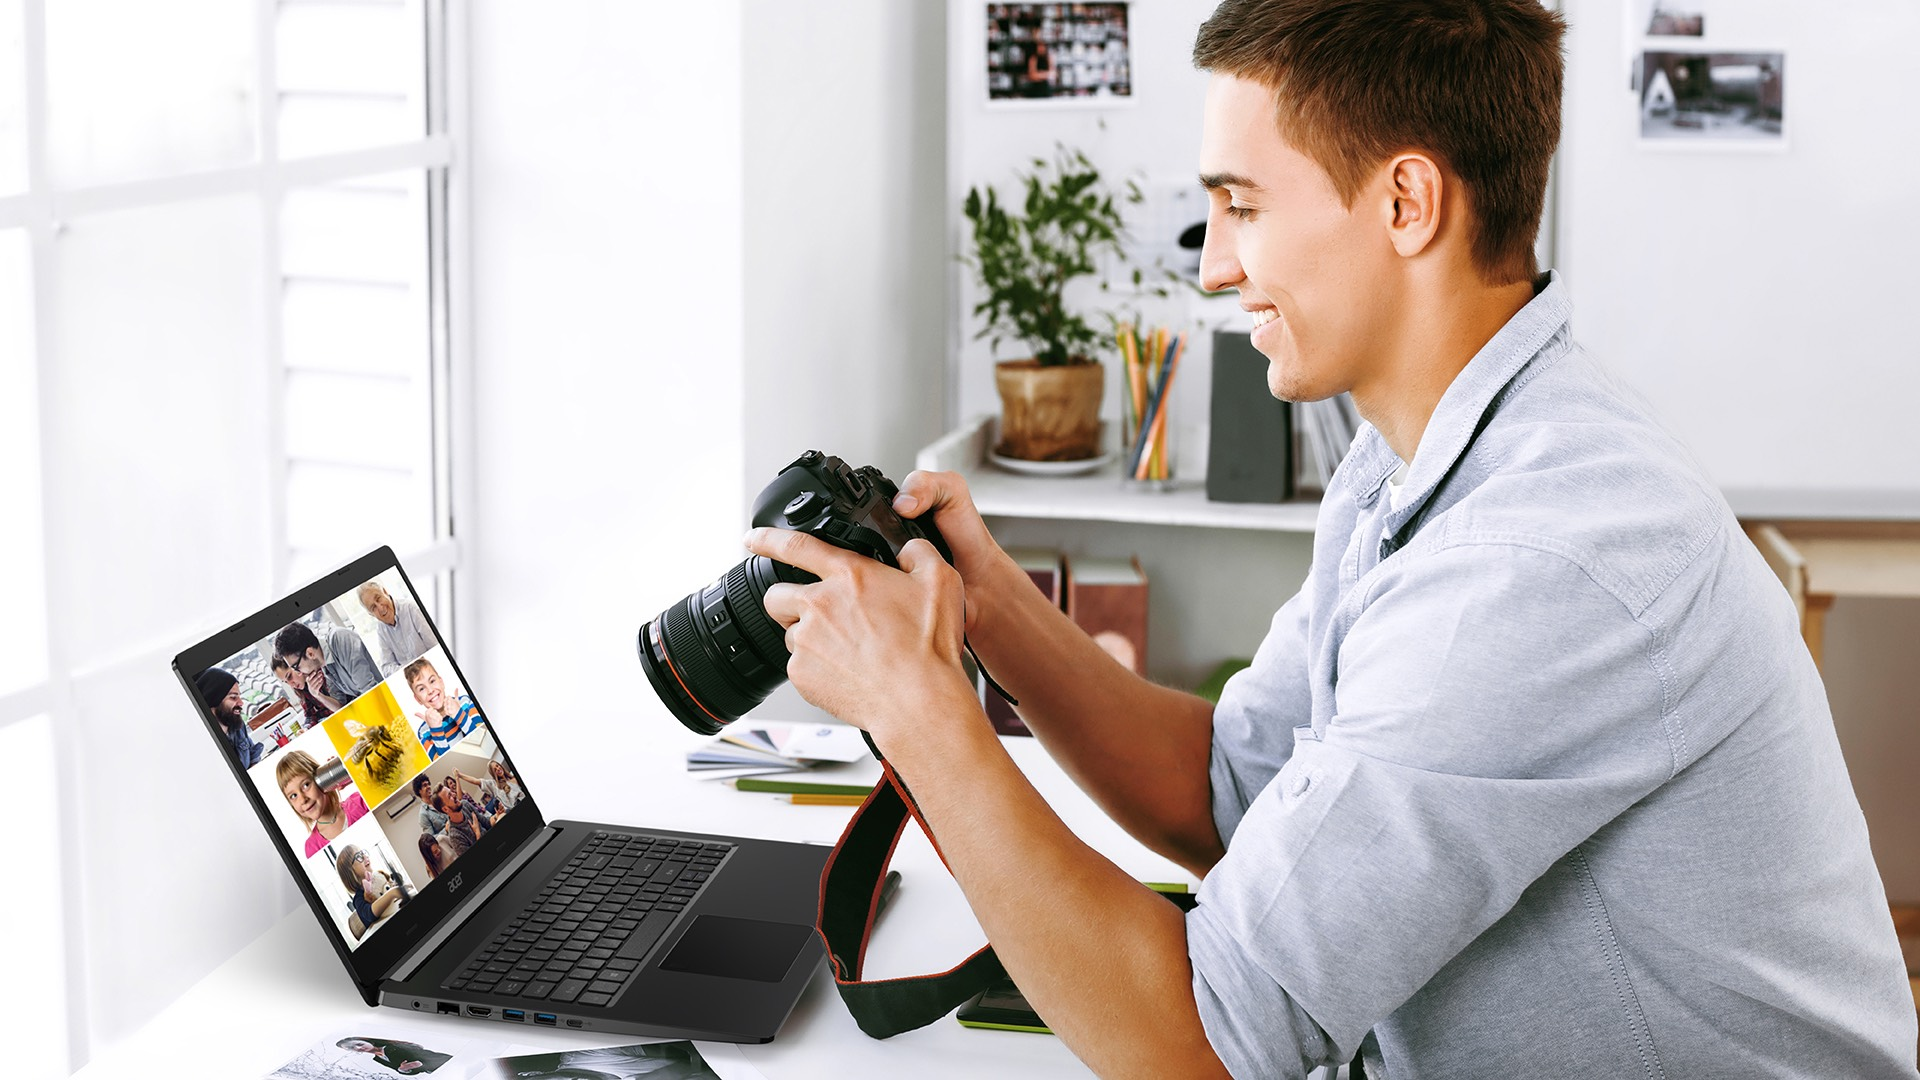 A man is taking photos. He focuses on the notebook display which shows some images.